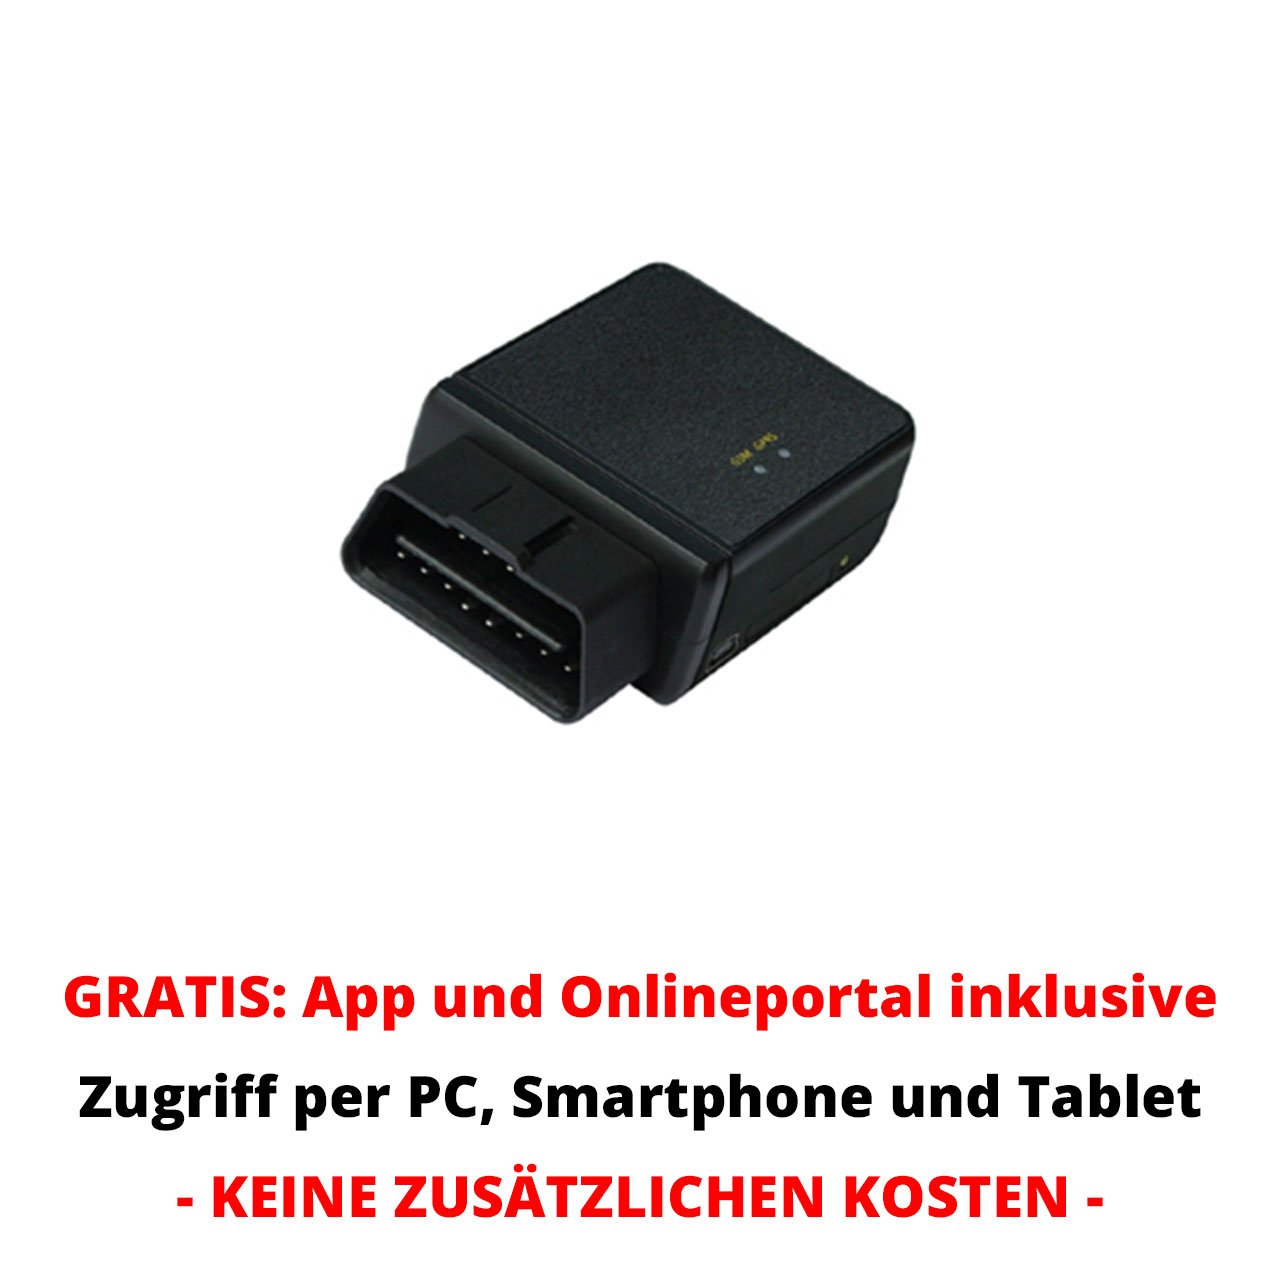 gps tracker peilsender mit obd2 schnittstelle f r. Black Bedroom Furniture Sets. Home Design Ideas